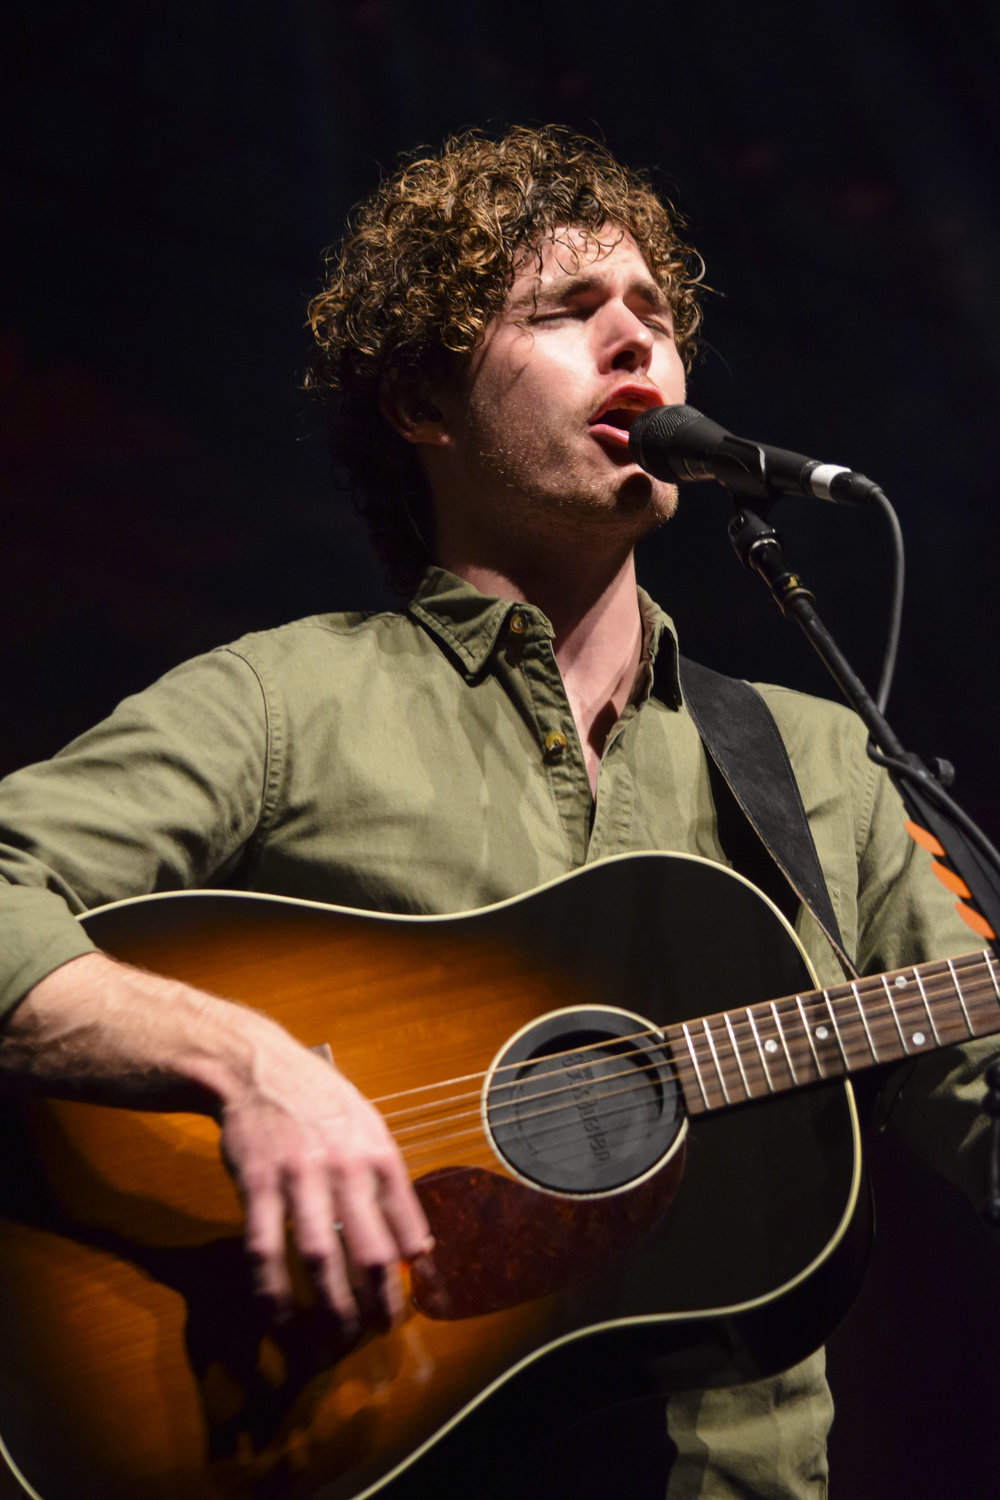 VanceJoy_Feb2016DSC_0229_Edited_Small.jpg